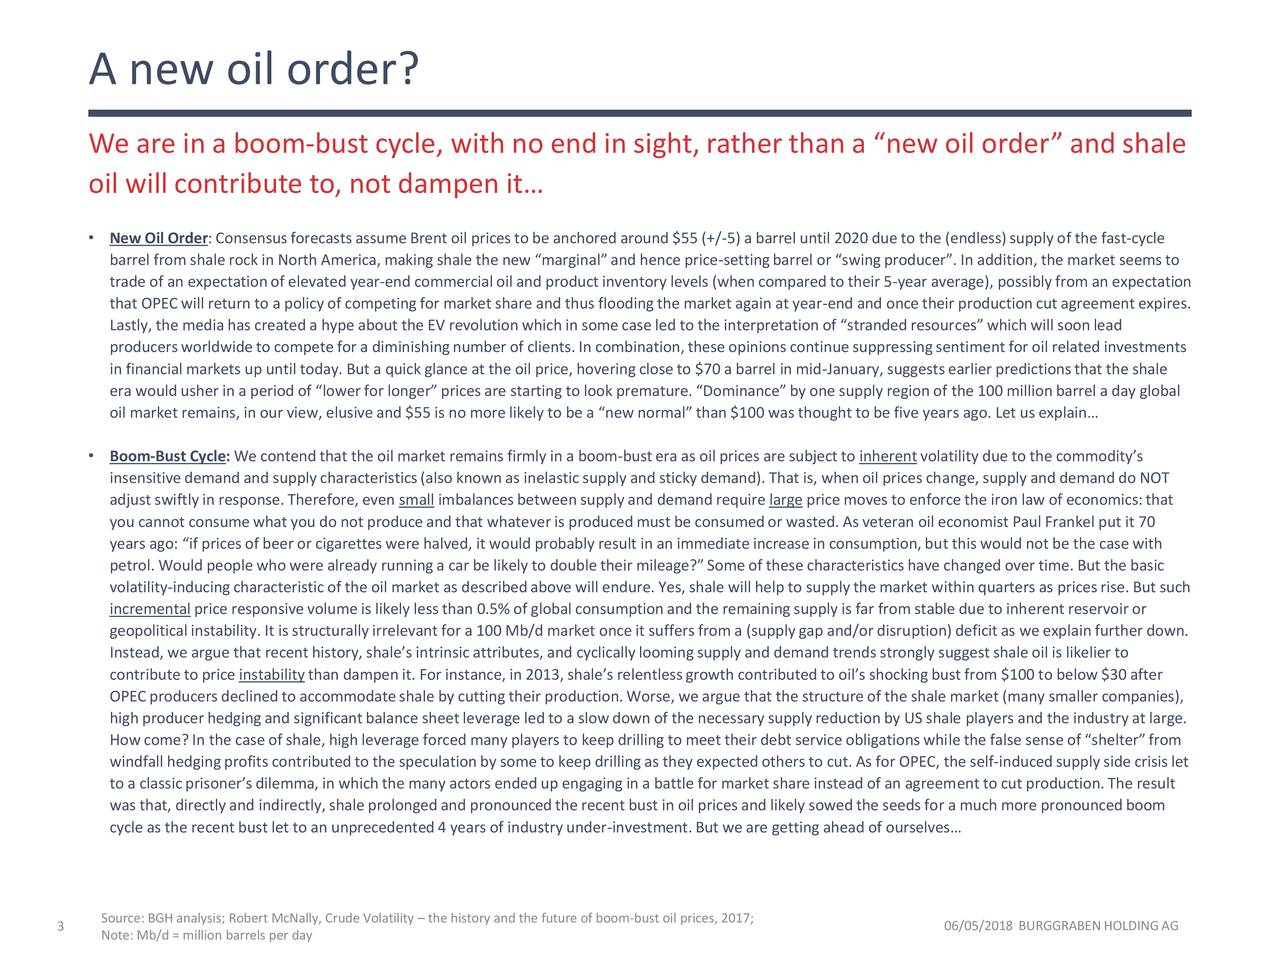 """We are in a boom-bust cycle, with no end in sight, rather than a """"new oil order"""" and shale oil will contribute to, not dampen it… • New Oil Order: Consensusforecasts assume Brent oil prices to be anchored around $55 (+/-5) a barrel until 2020 due to the (endless) supply of the fast-cycle barrel from shale rock in North America, making shale the new """"marginal"""" and hence price-settingbarrel or """"swingproducer"""". In addition, the market seems to trade of an expectationof elevated year-end commercial oil and productinventory levels (when compared to their 5-year average), possiblyfrom an expectation that OPEC will return to a policy of competingfor market share and thus flooding the market again at year-end and once their productioncut agreement expires. Lastly, the media has created a hype about the EV revolutionwhich in some case led to the interpretation of """"stranded resources""""which will soonlead producersworldwideto compete for a diminishingnumber of clients. In combination,these opinions continuesuppressingsentimentfor oil related investments in financial markets up until today. But a quick glance at the oil price, hovering close to $70 a barrel in mid-January, suggestsearlier predictionsthat the shale era would usher in a period of """"lowerfor longer"""" prices are starting to look premature. """"Dominance""""by one supply region of the 100 millionbarrel a day global oil market remains, in our view, elusiveand $55 is no more likely to be a """"new normal"""" than $100 was thought to be five years ago. Let us explain… • Boom-Bust Cycle: We contendthat the oil market remains firmly in a boom-bustera as oil prices are subjectto inherentvolatility due to the commodity's insensitive demand and supplycharacteristics(also known as inelasticsupply and sticky demand). That is, when oil prices change, supply and demand do NOT adjust swiftly in response.Therefore, even small imbalancesbetween supply and demand require large price moves to enforce the iron law of economics:that you cannot consu"""